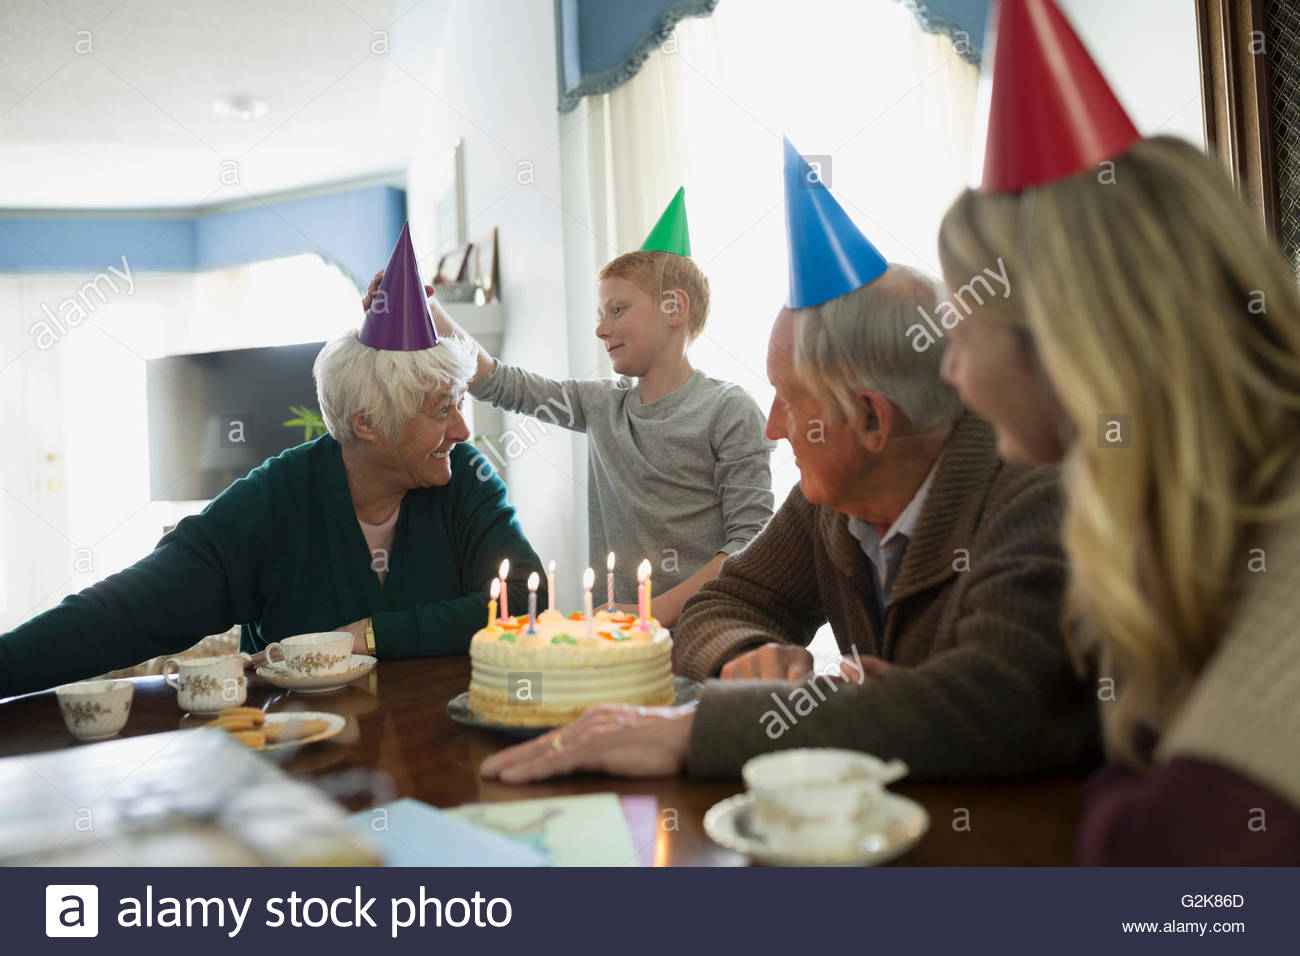 Multi Generation Family Celebrating Birthday With Cake And Party Hats